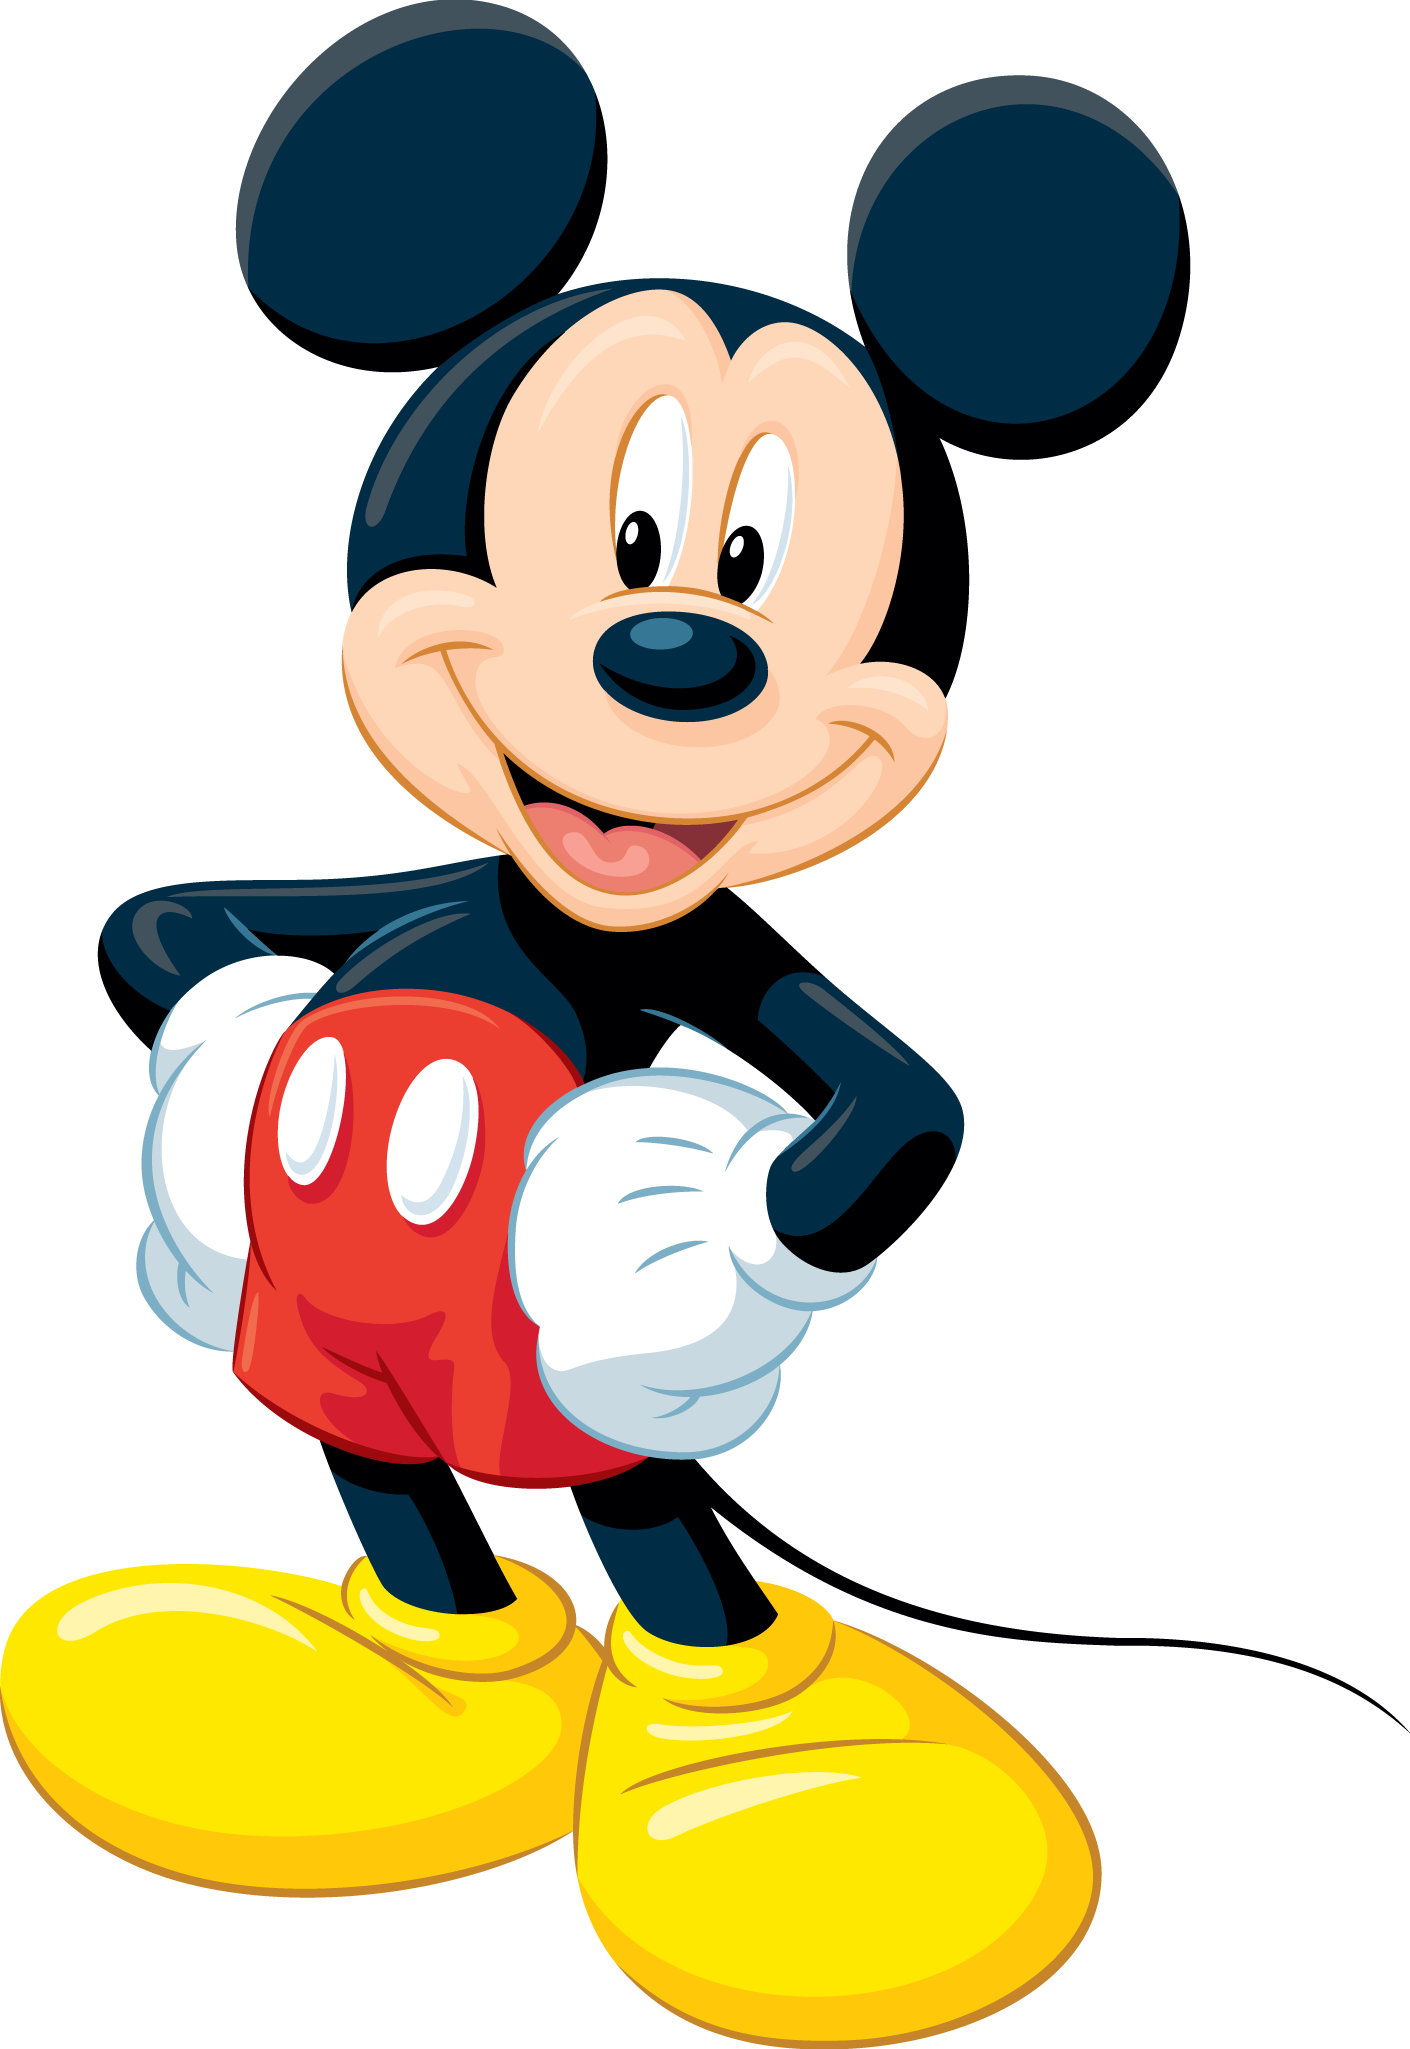 Hd transparent images pluspng. Mickey mouse head png black and white